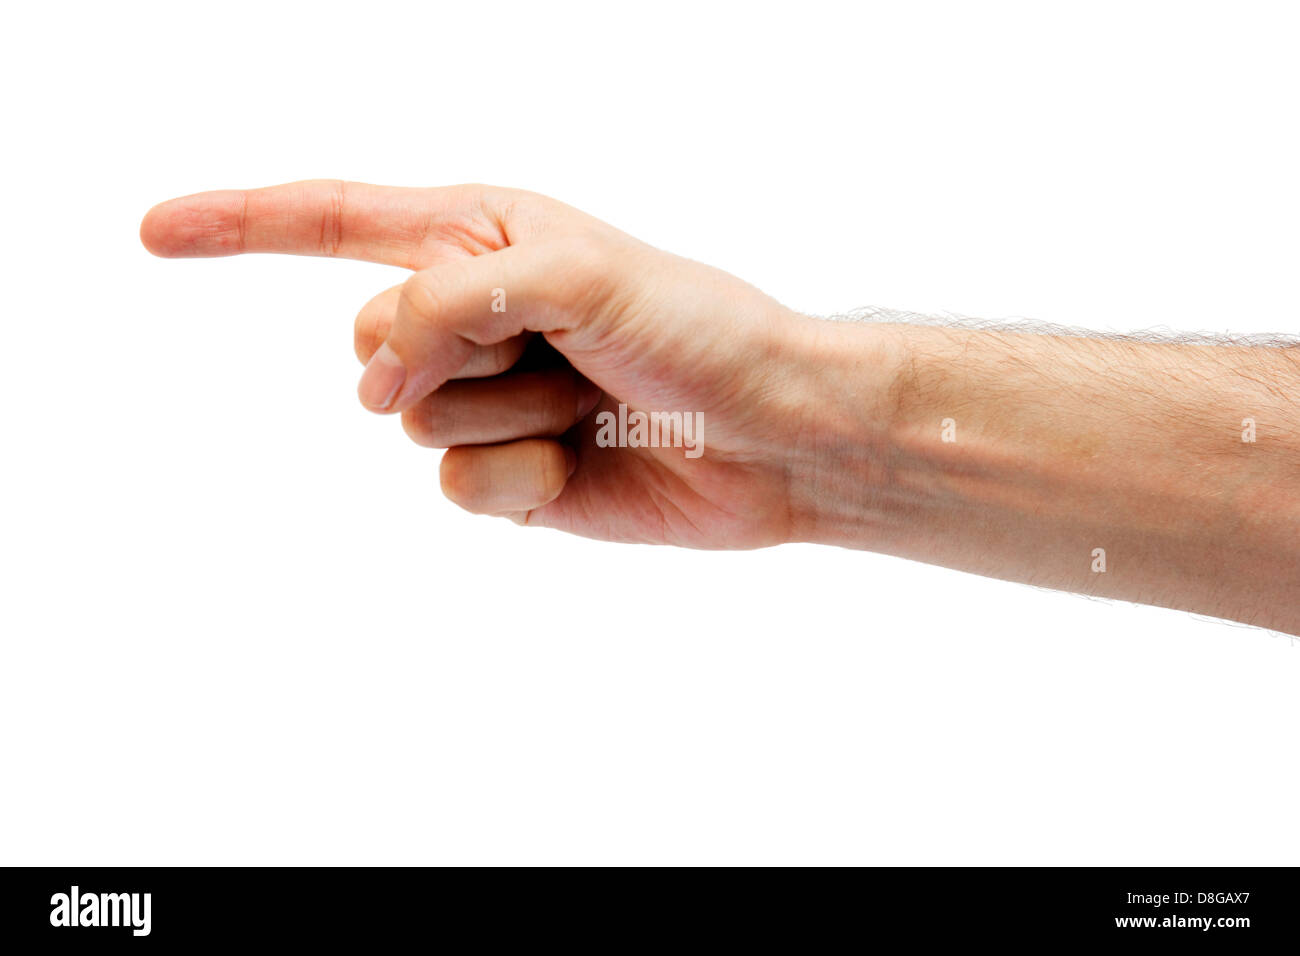 Human hand point with finger isolated on white. - Stock Image